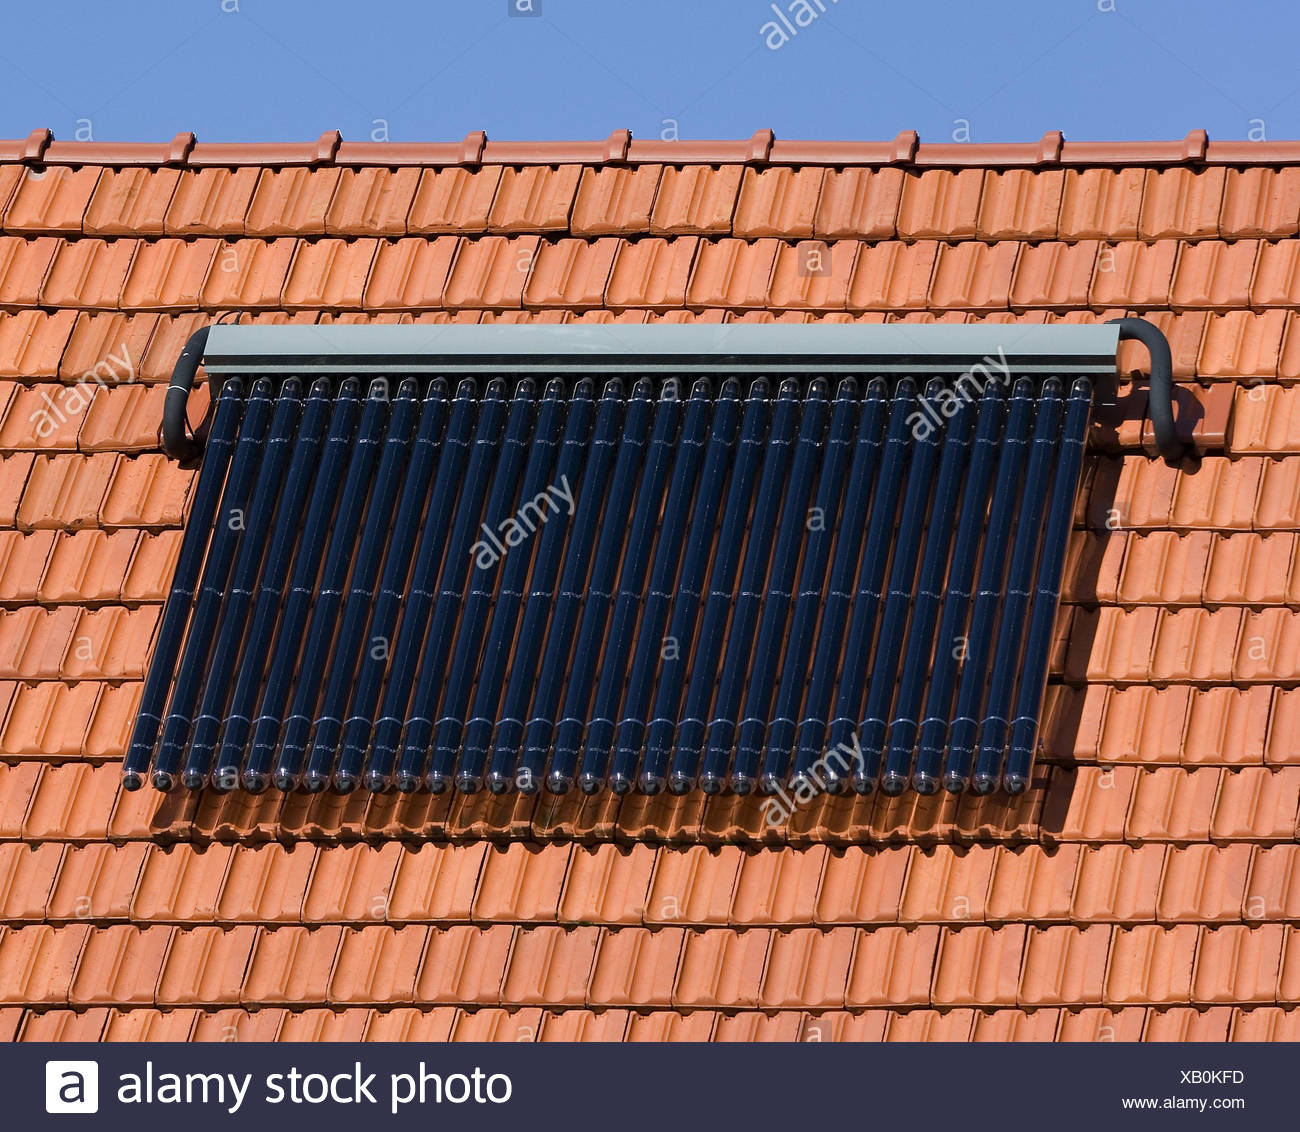 House roof, detail, solar panels, hot-water production, alternatively, alternative energy, water for industrial use, roof, tiled roof, roofing tile, energy, energy consumption, power supply, solar panel, solar collector, heat, hot water, water, climate, climate change, ecologically, - Stock Image